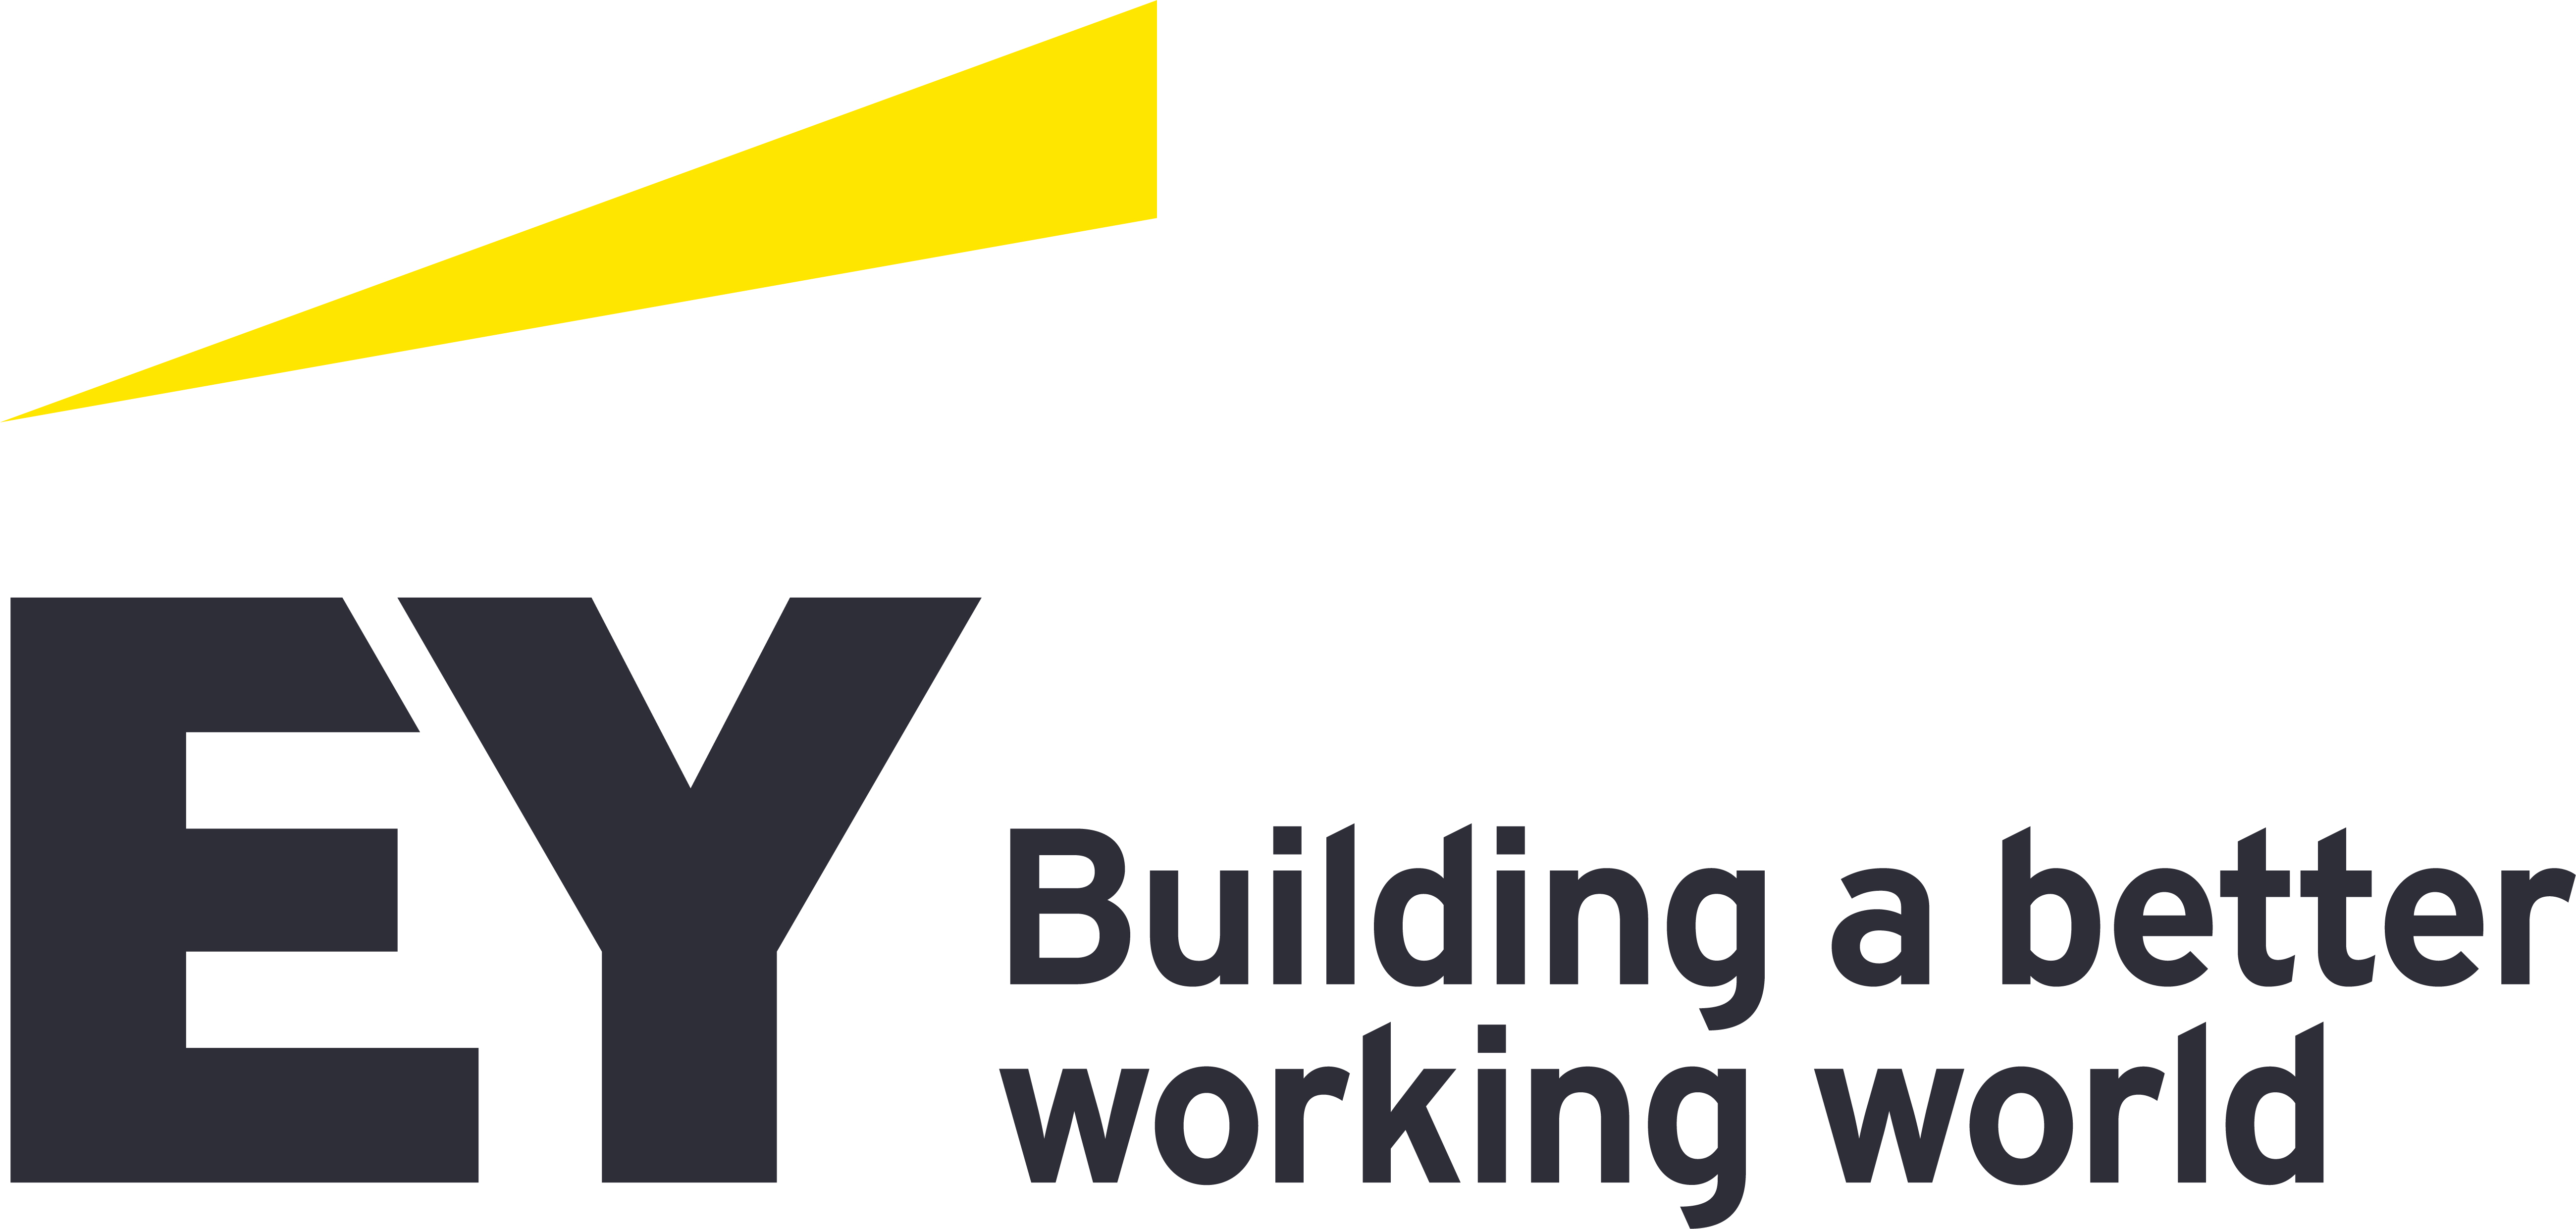 Click to go to Ey's Website